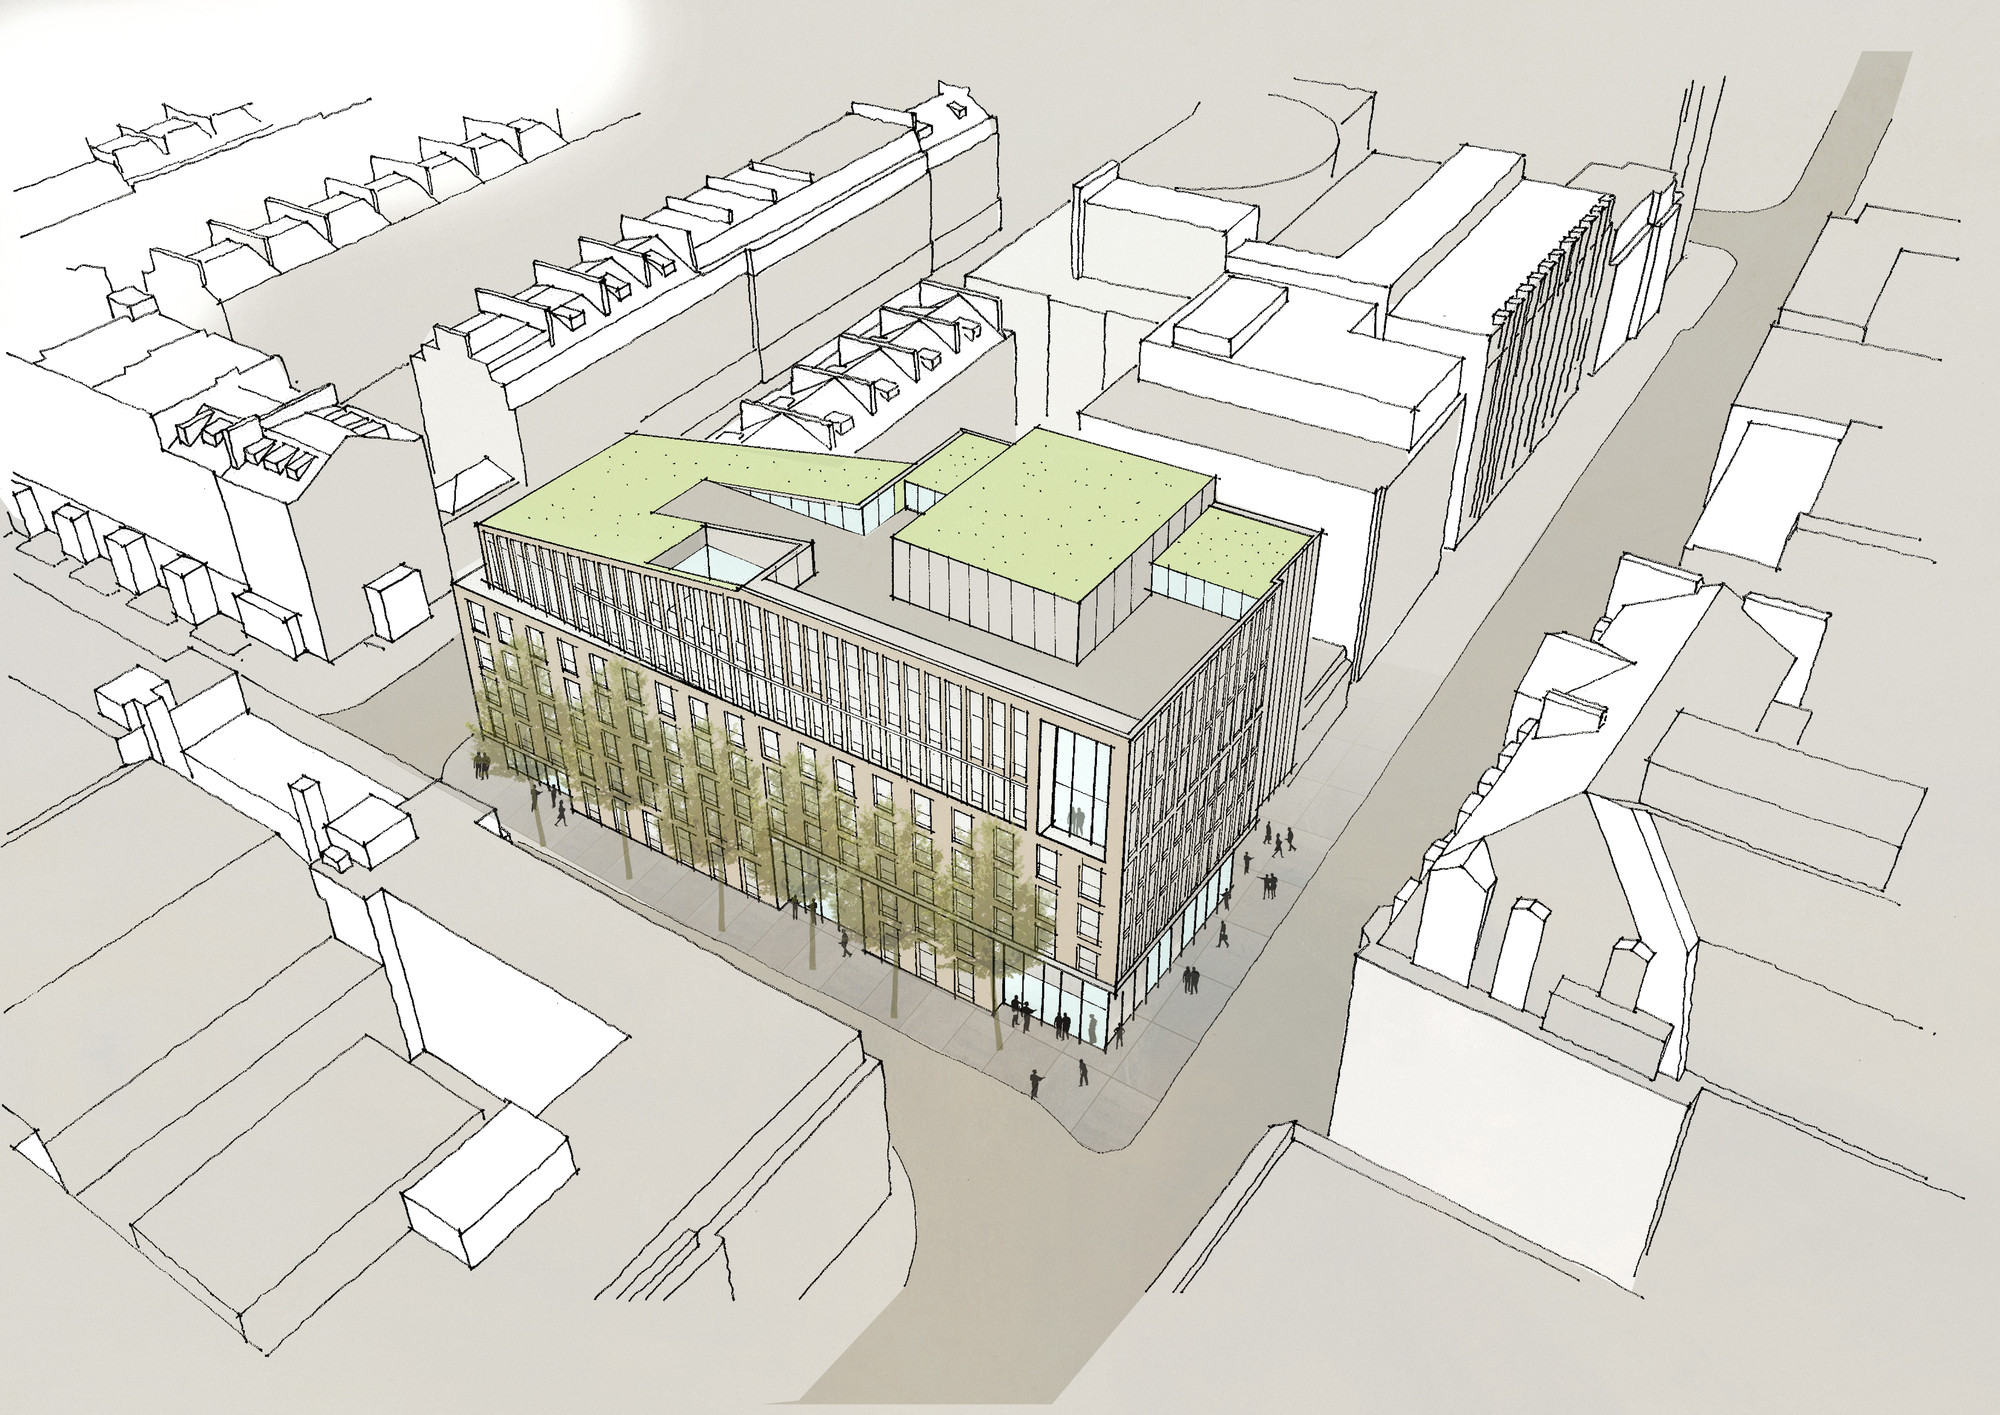 Hawkinsbrown reveal plans for bartlett school revamp